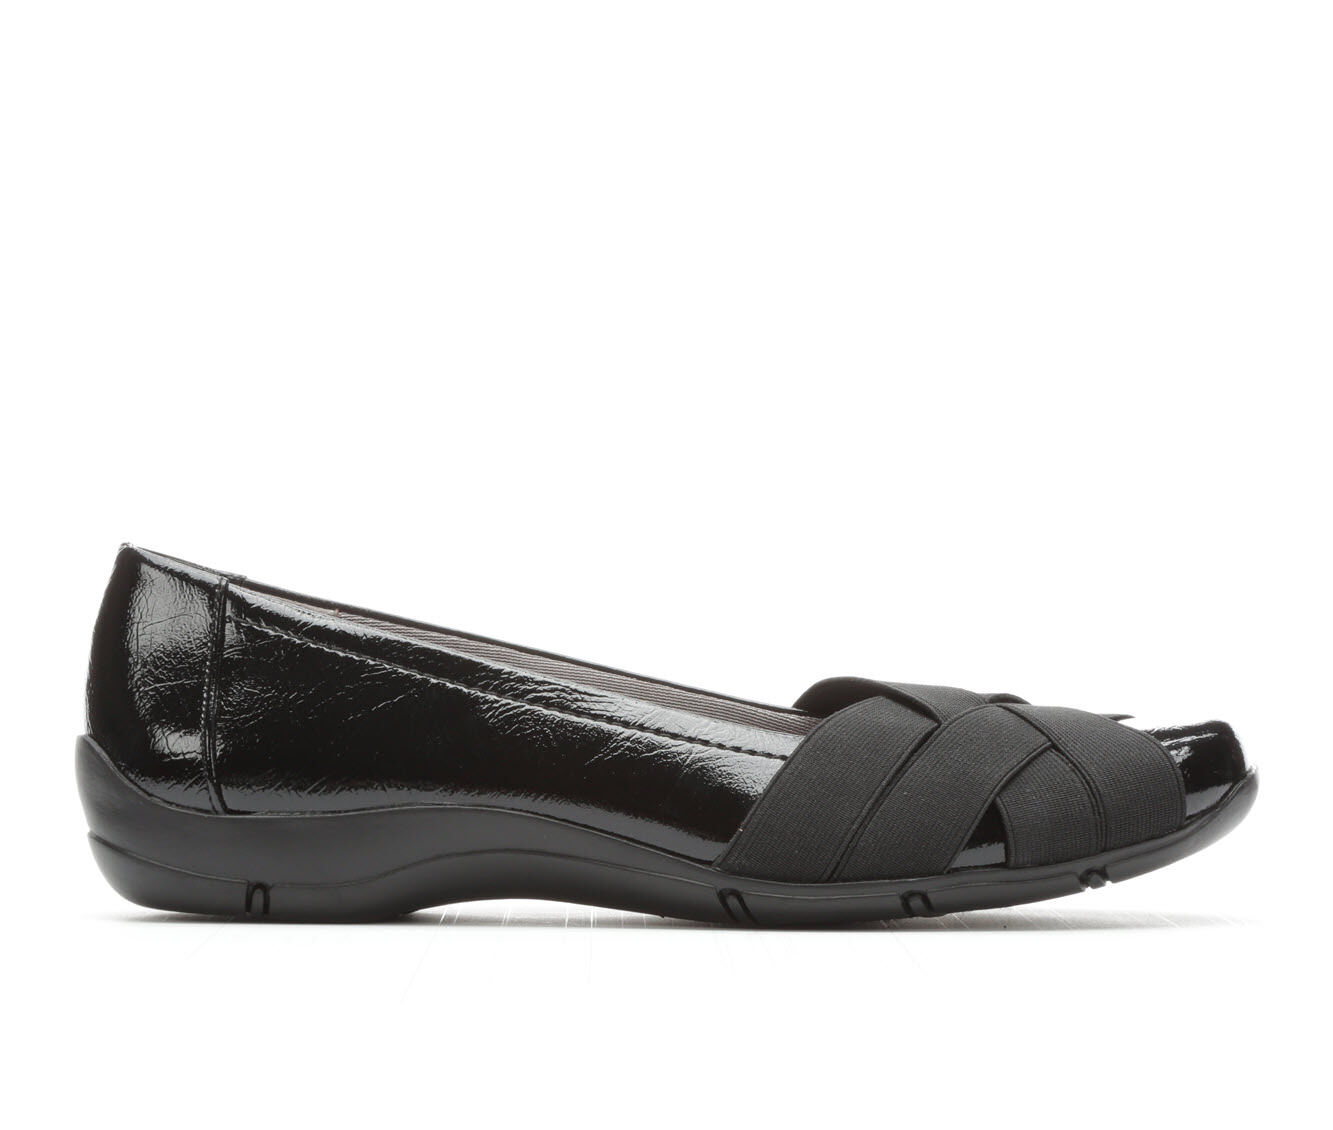 cheap sale low shipping Women's LifeStride Daisie Loafers store for sale official cheap big sale k4uJT7wC